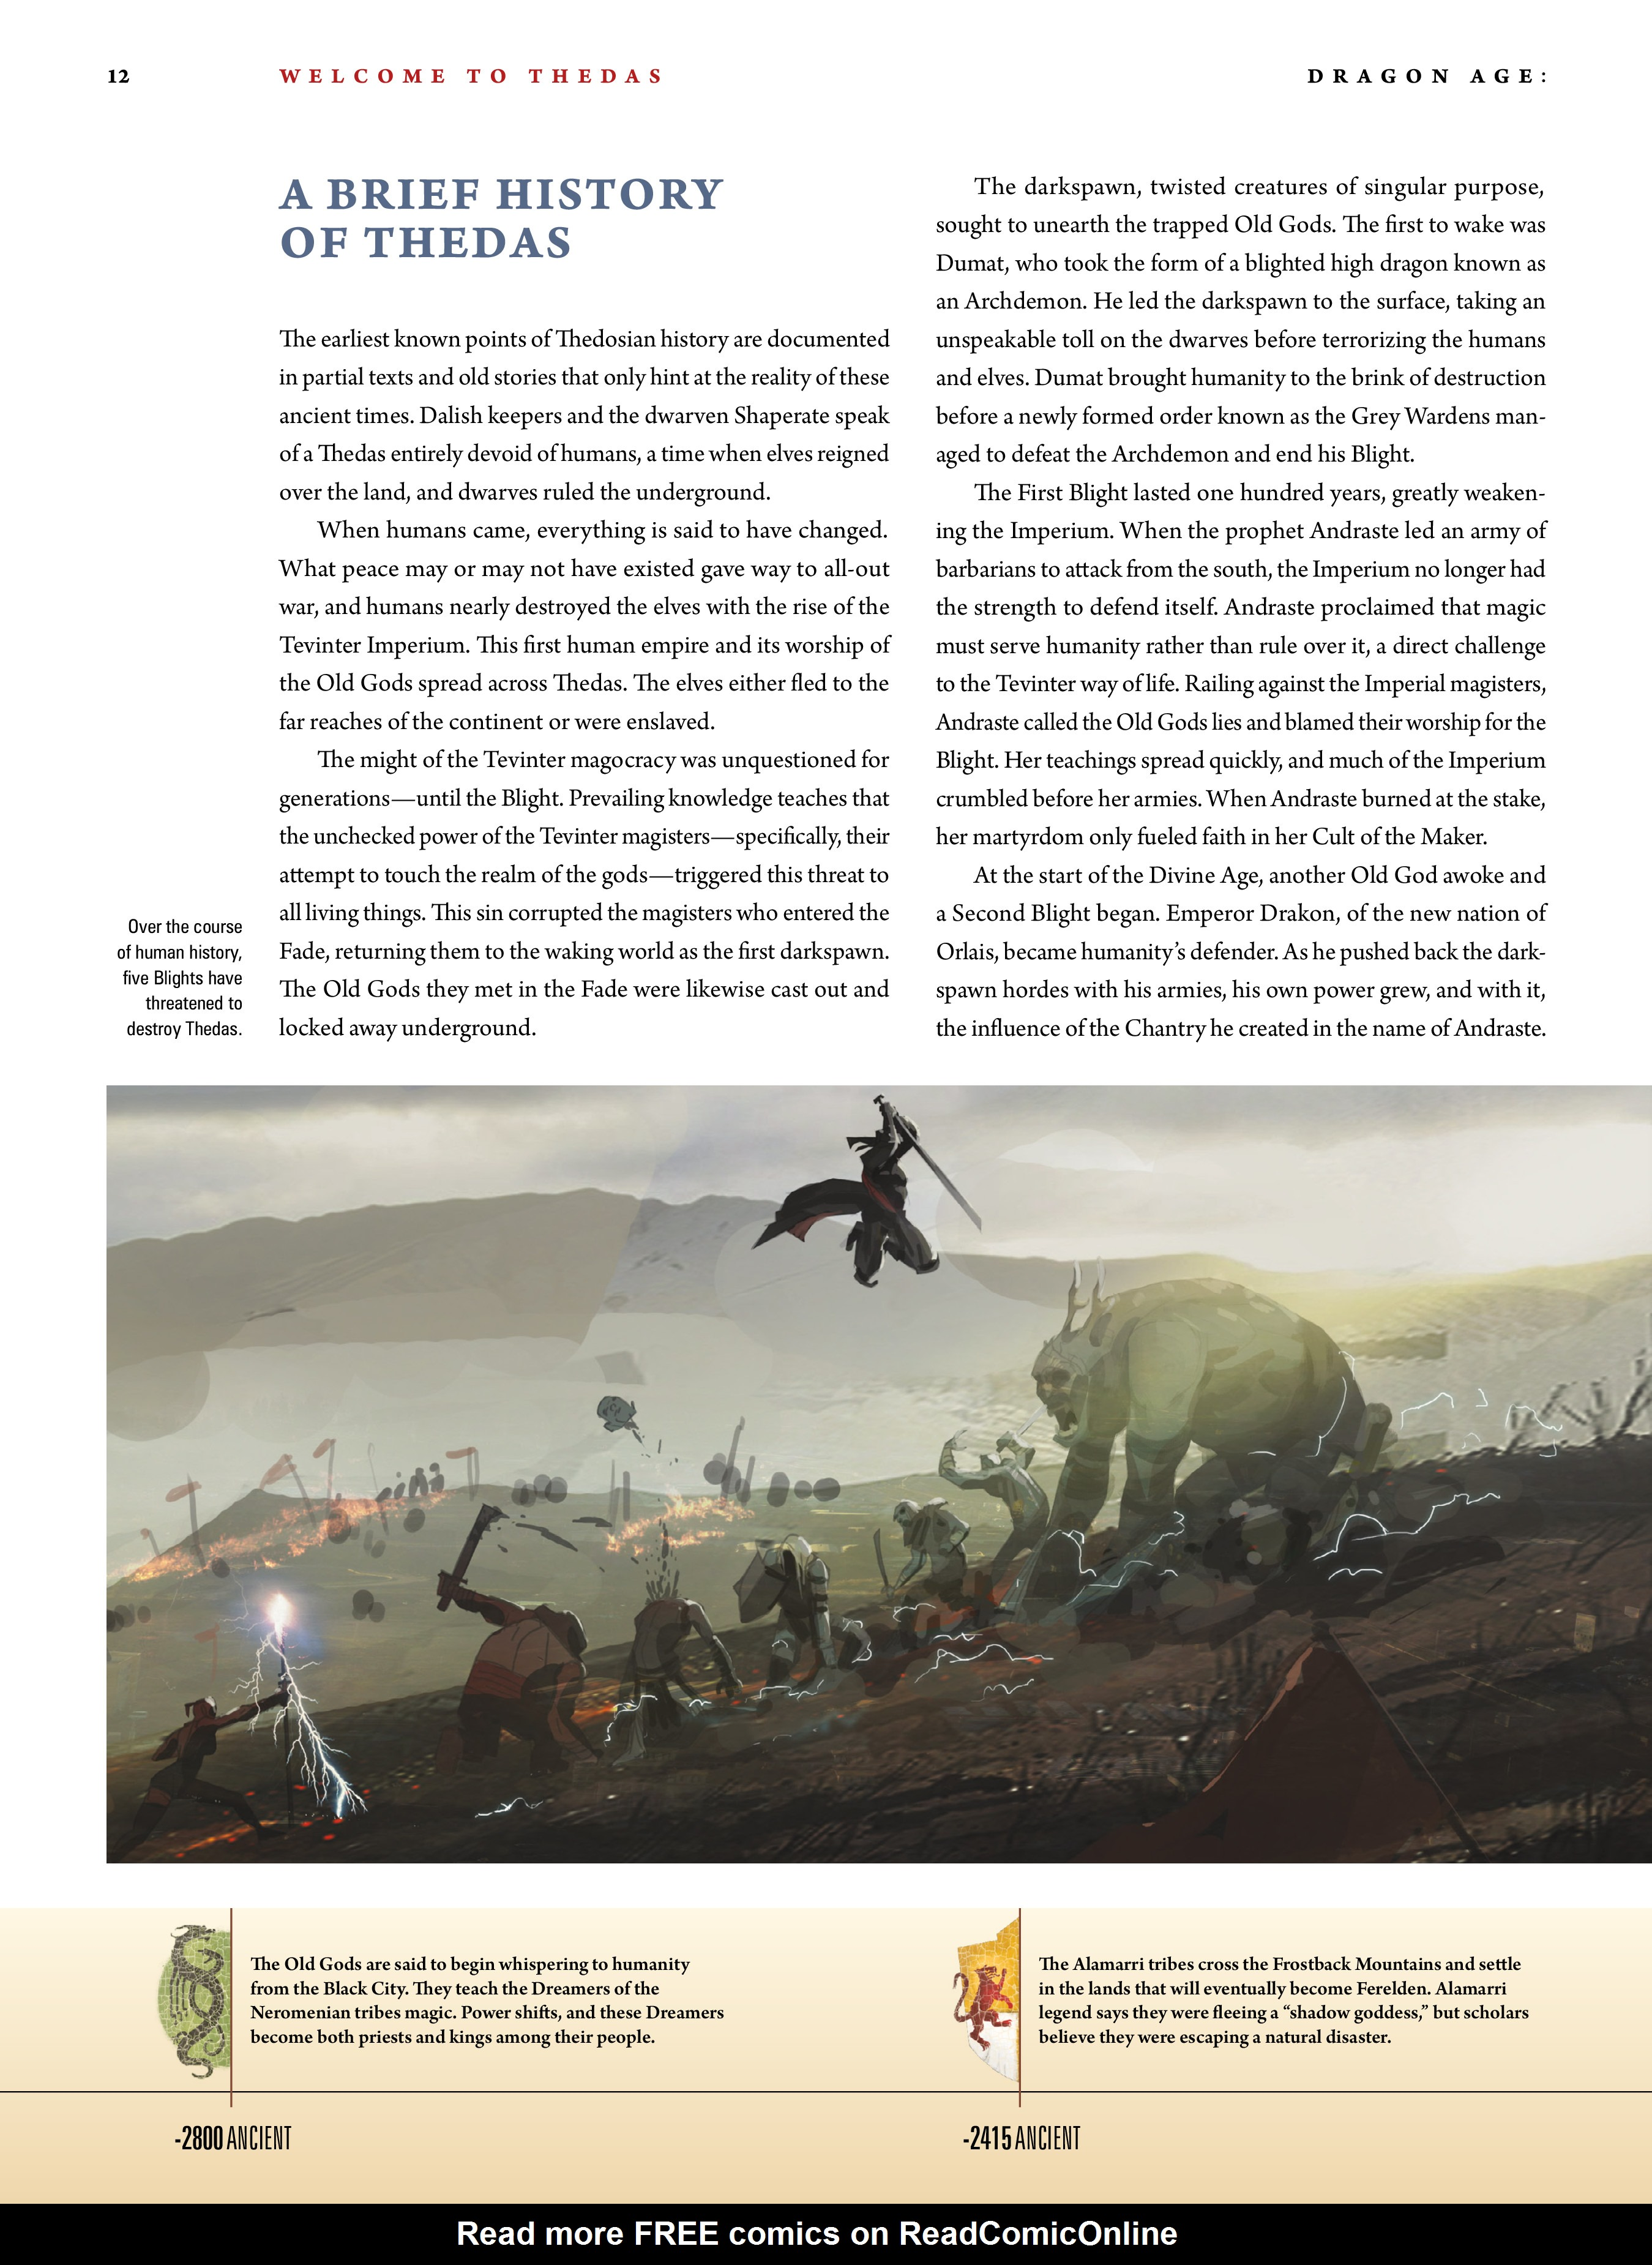 Read online Dragon Age: The World of Thedas comic -  Issue # TPB 1 - 10